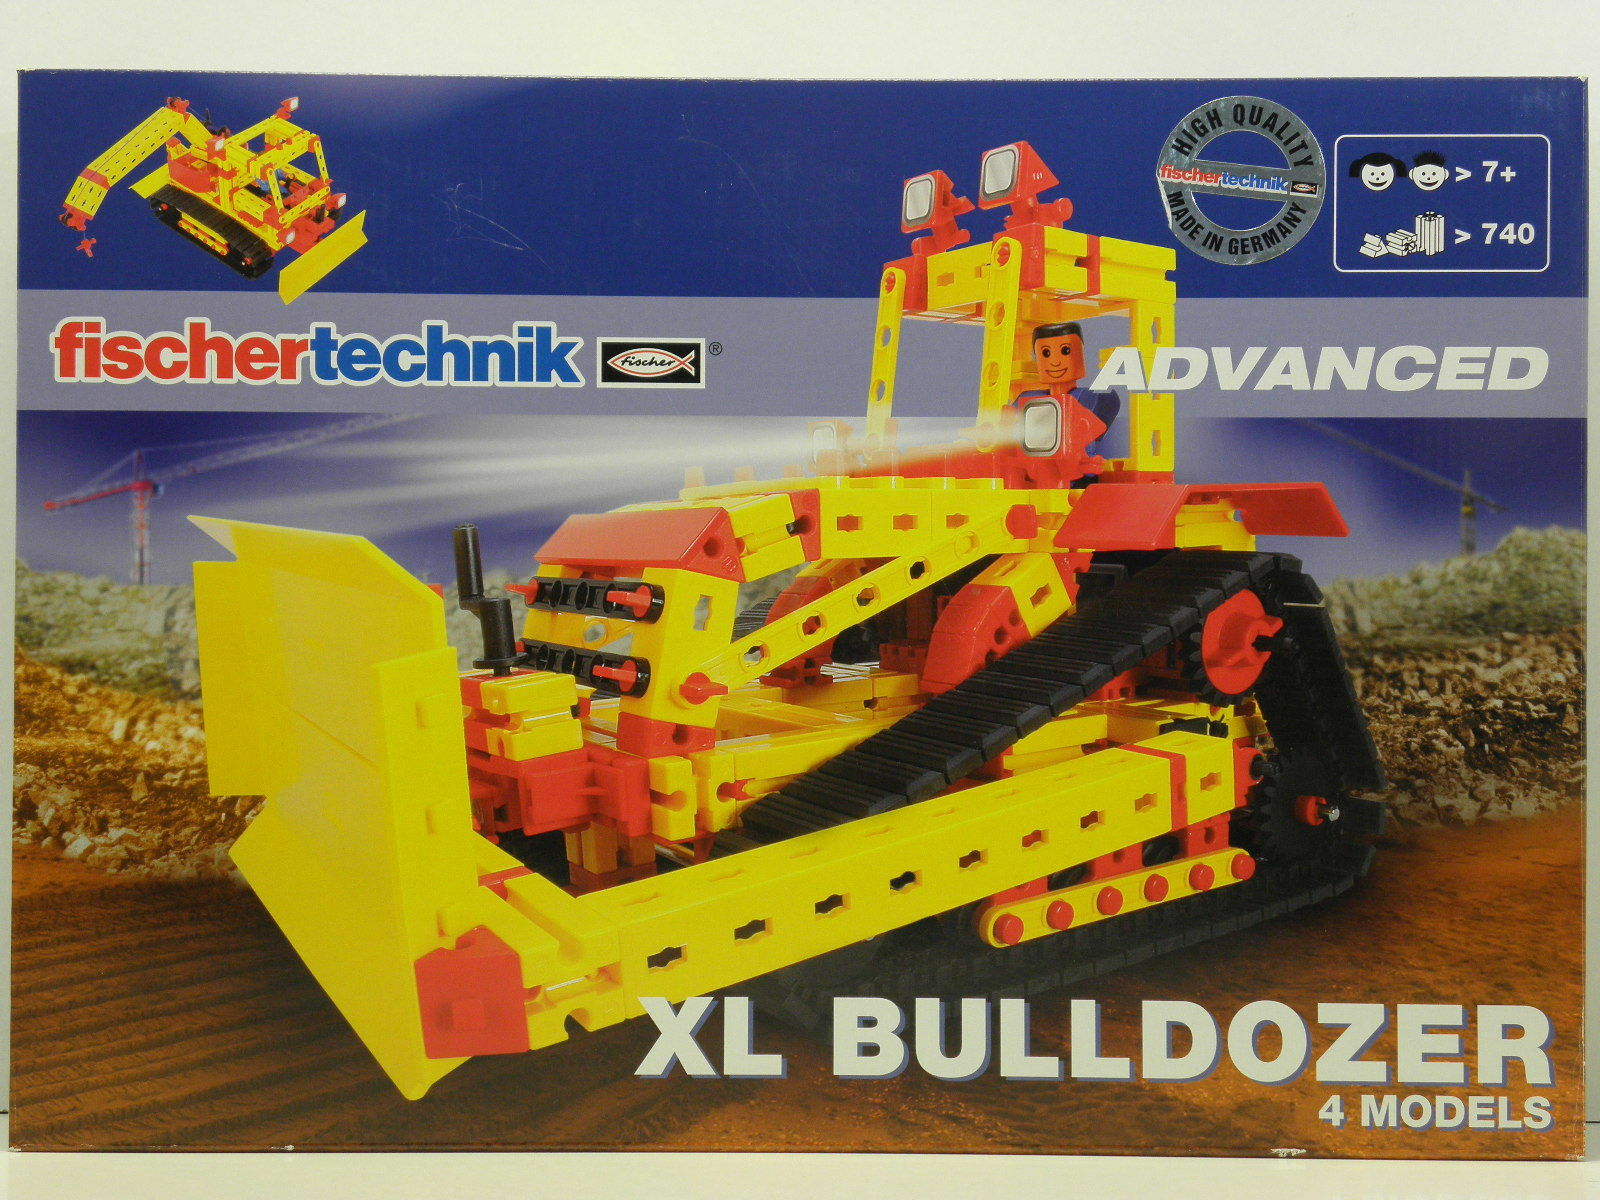 Fischertechnik 505280 Advanced Baukasten XL Bulldozer